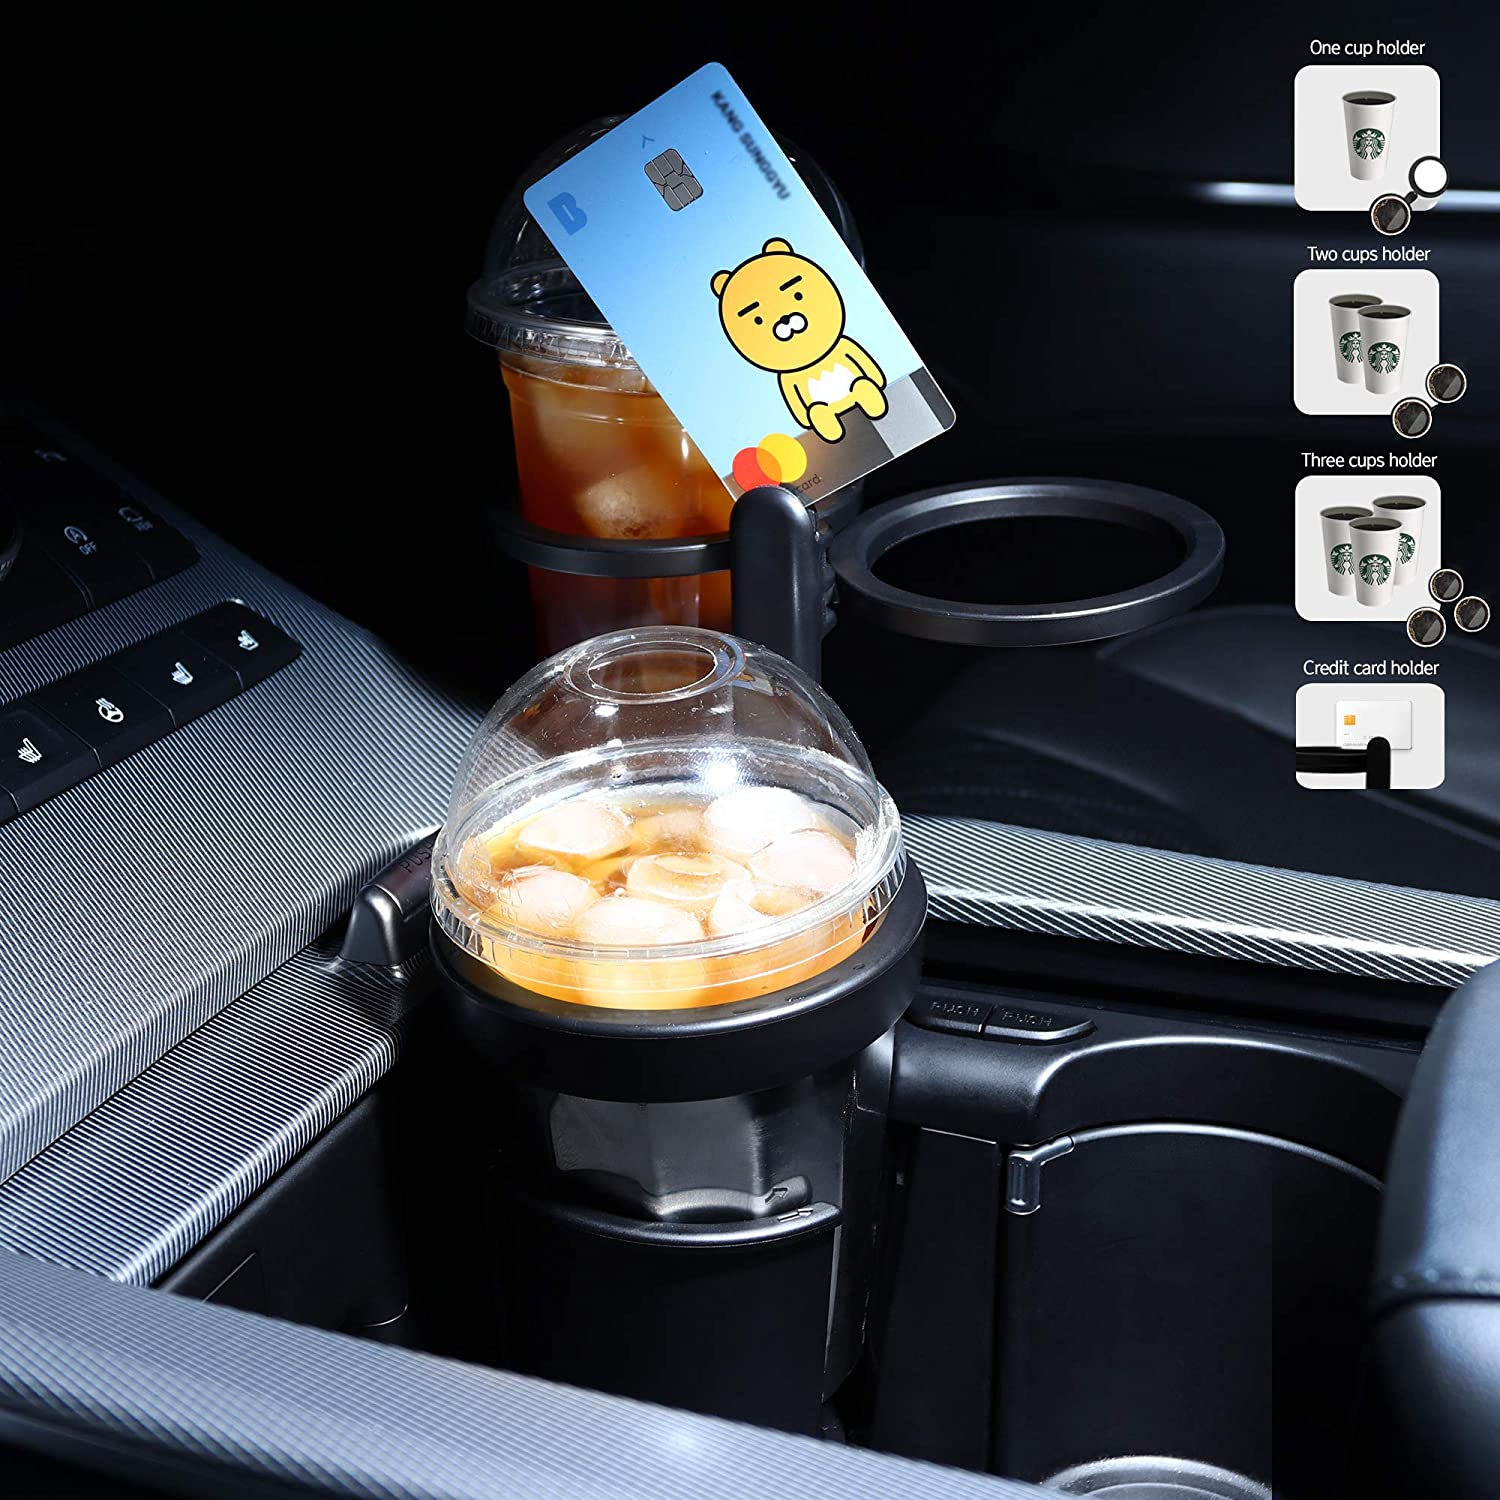 MAYTON Smart Multi Triple Car Cup Holder Warmer and Cooler Stainless Steel Universal Fit for Most Cars